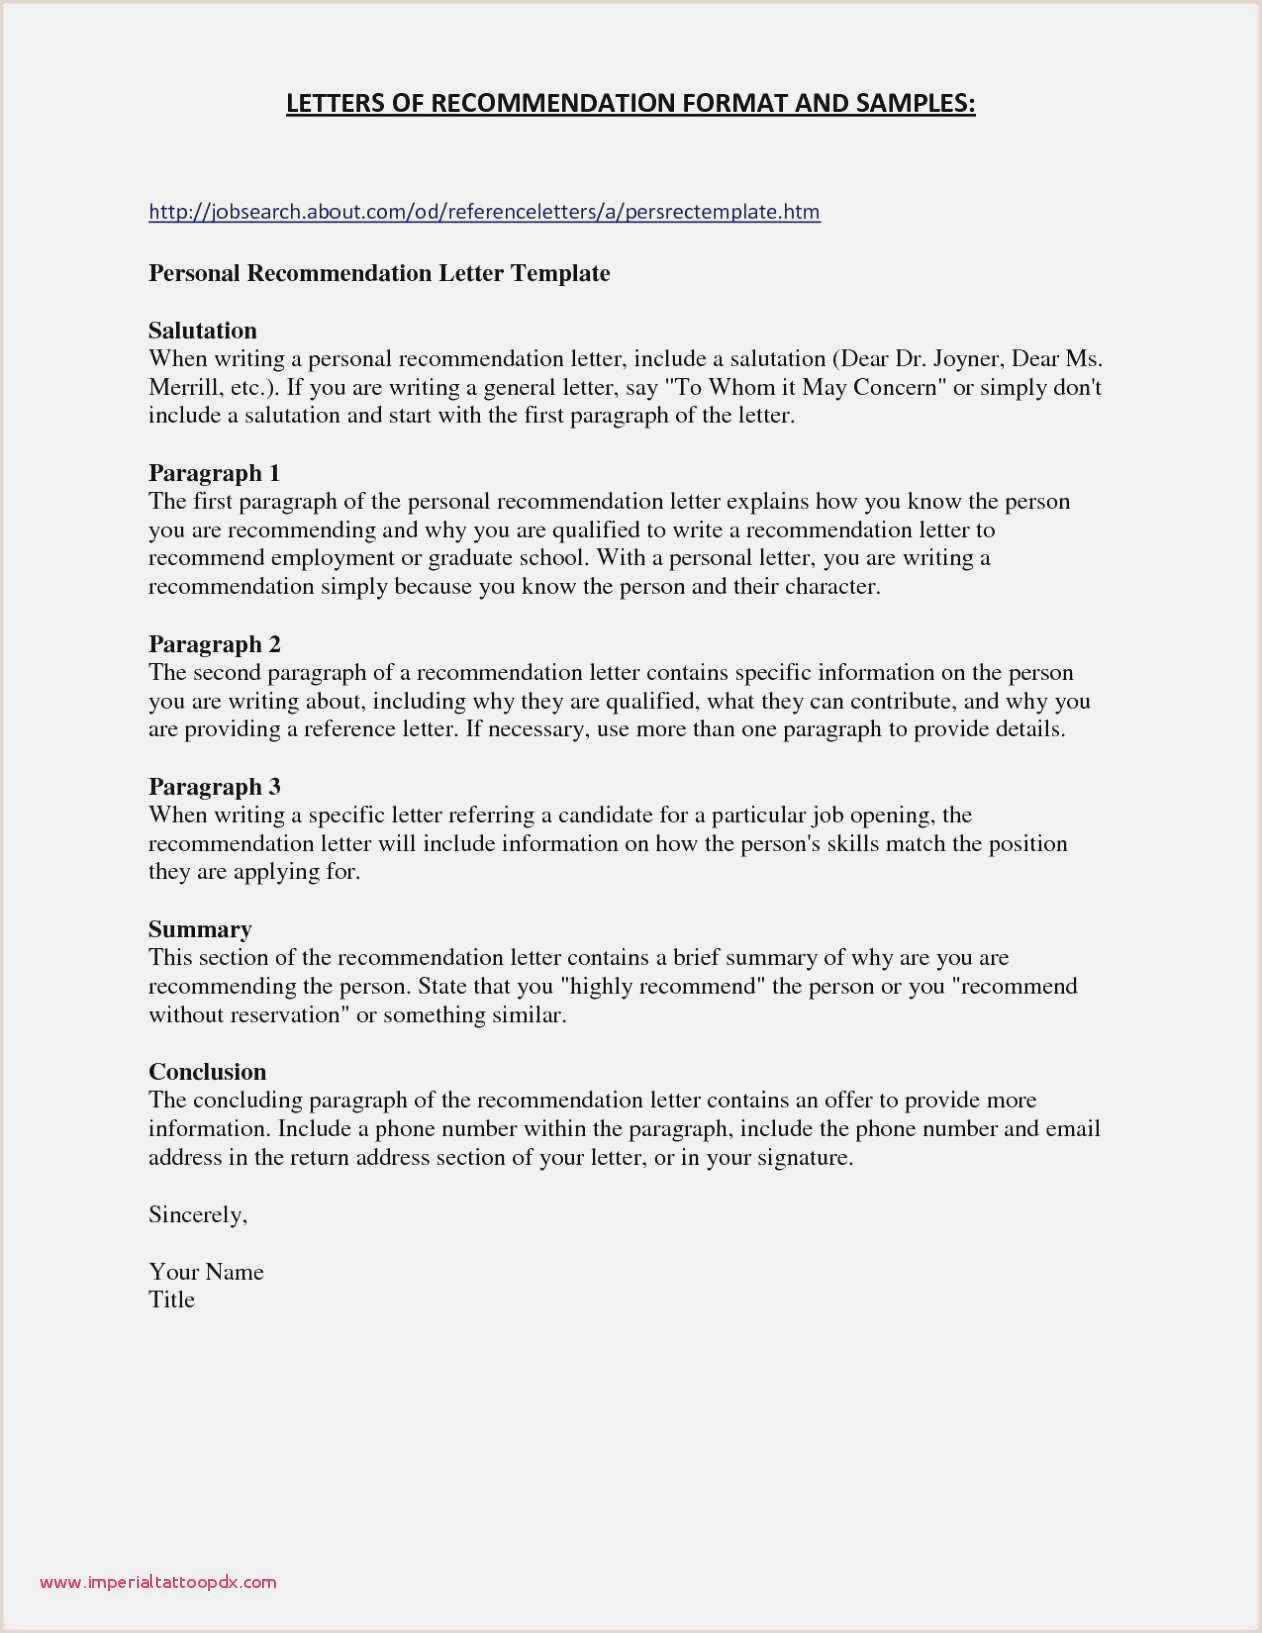 Professional Cv format Pdf Free Download Help Me Write A Resume for Free Eymir Mouldings Co Build and